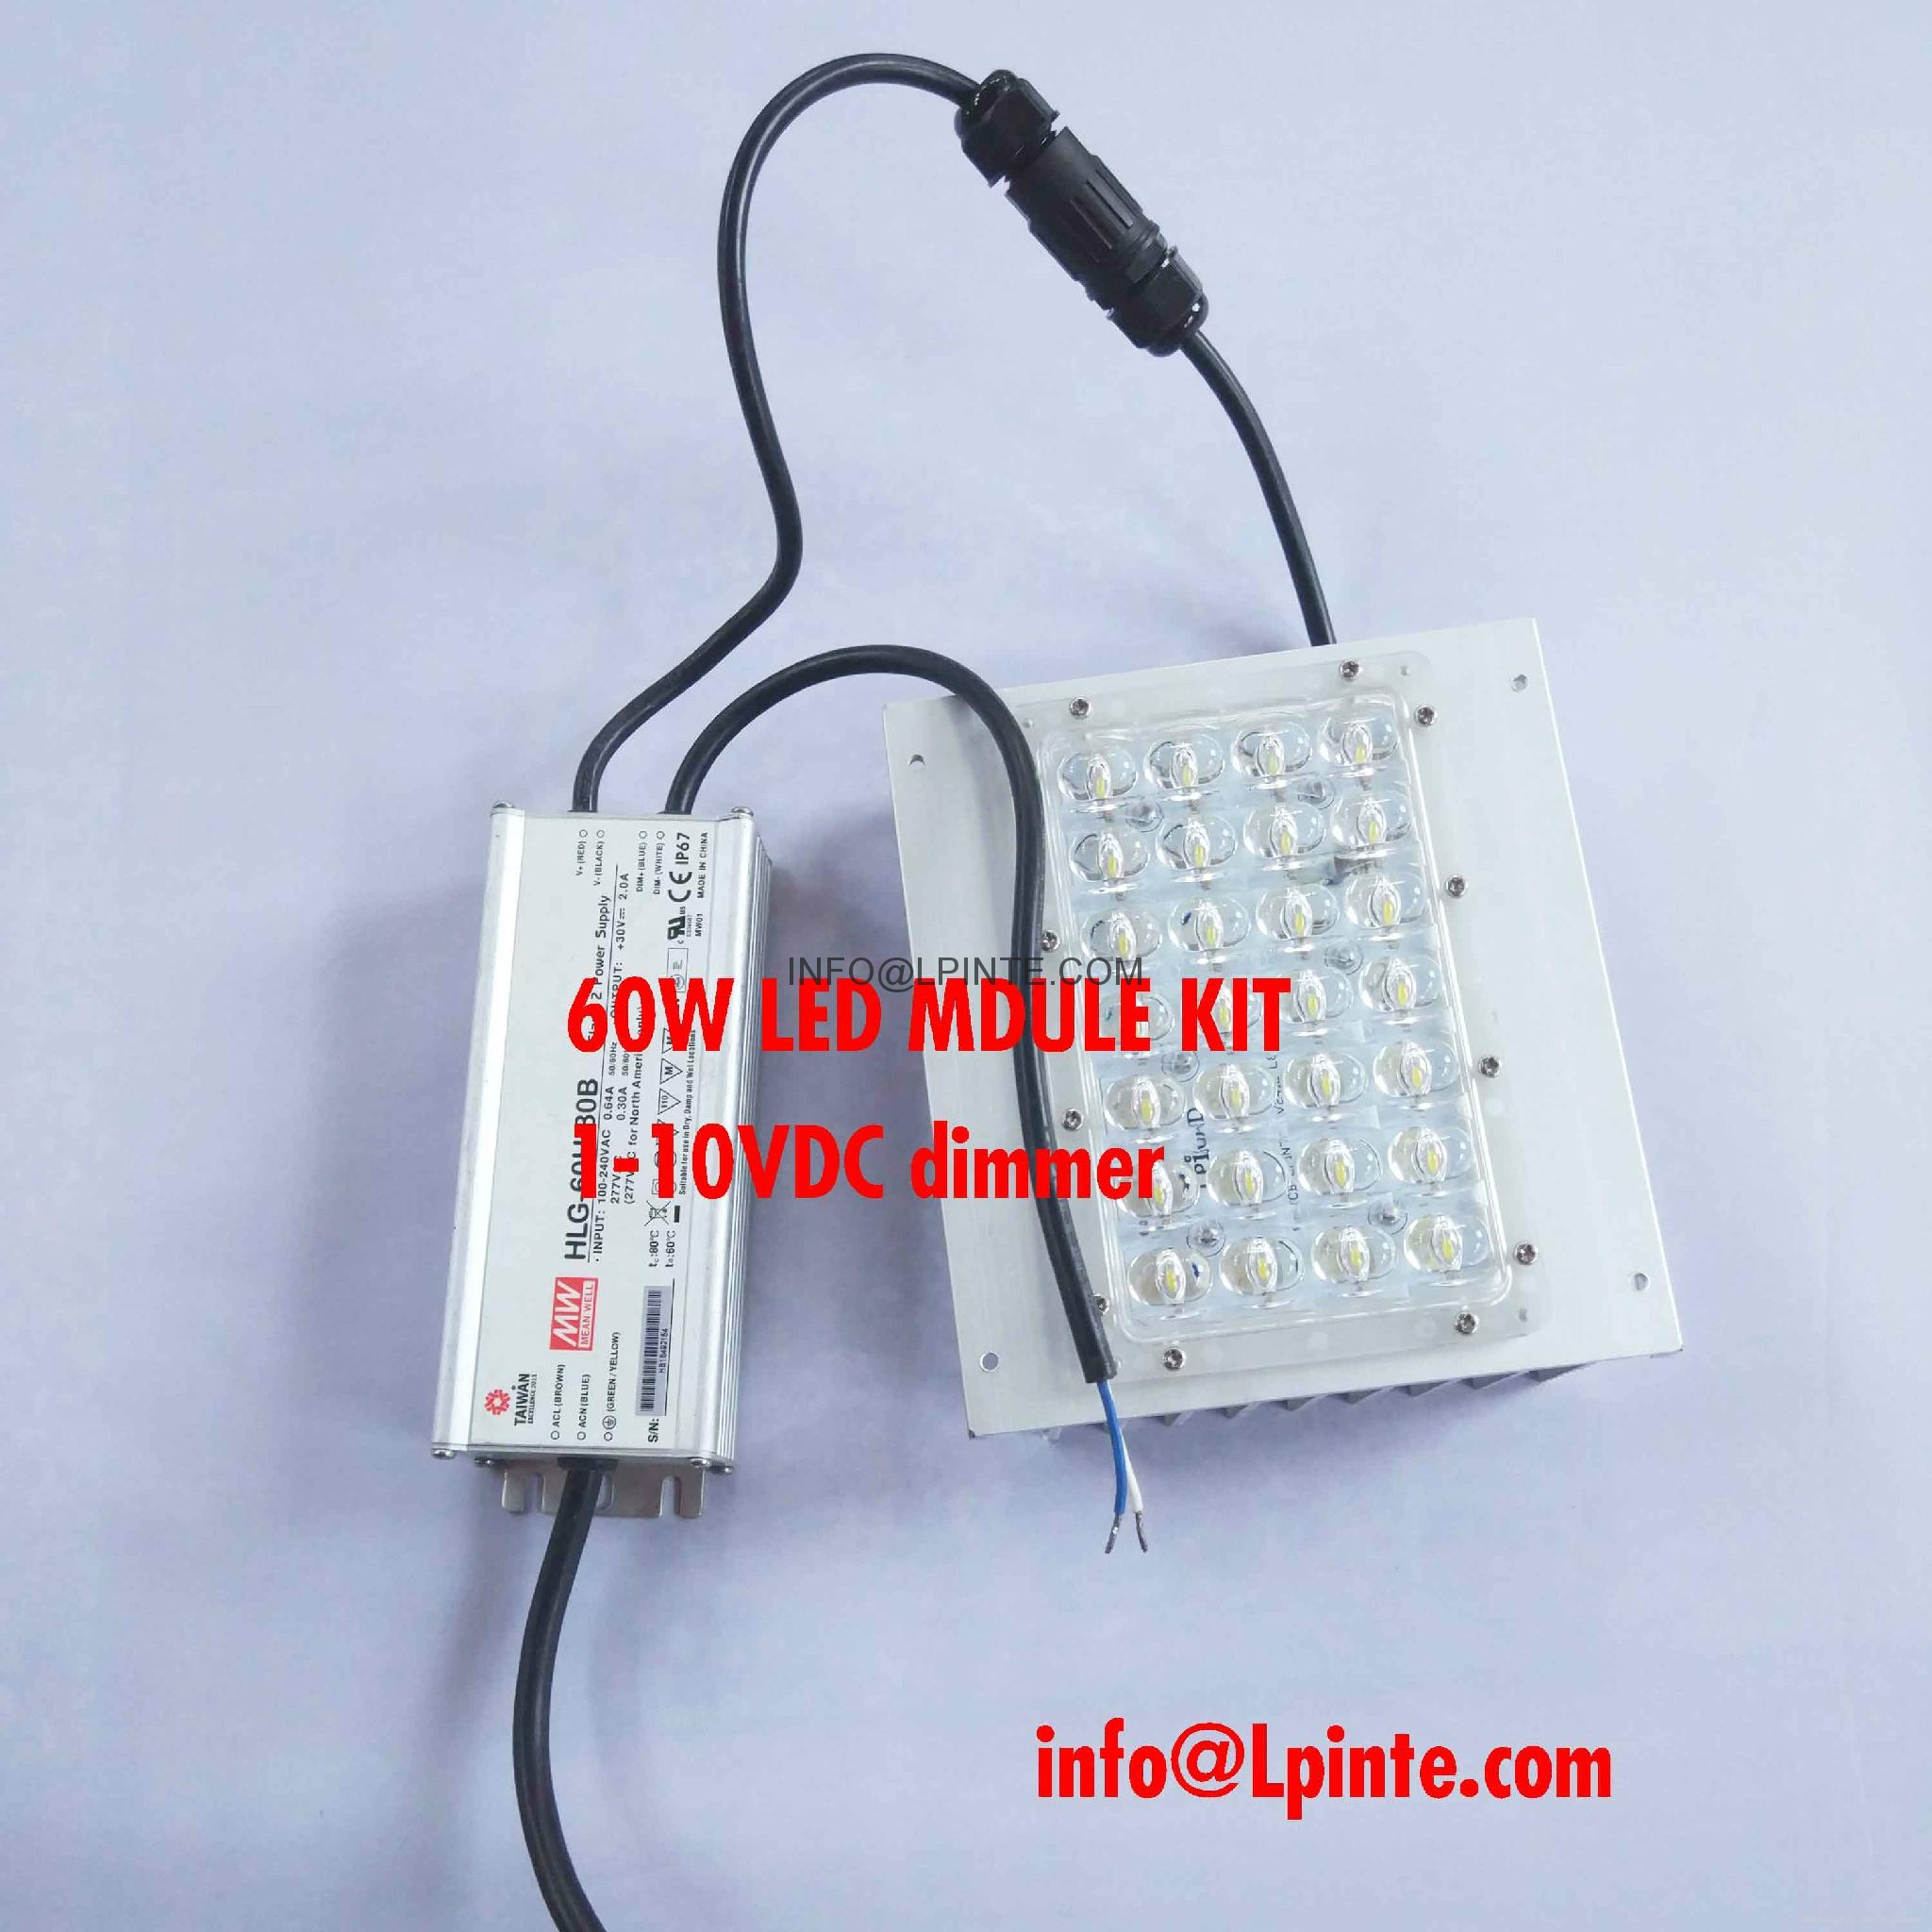 50w led module LV2412 street light module50w LV3519 colombia mexico led card 9